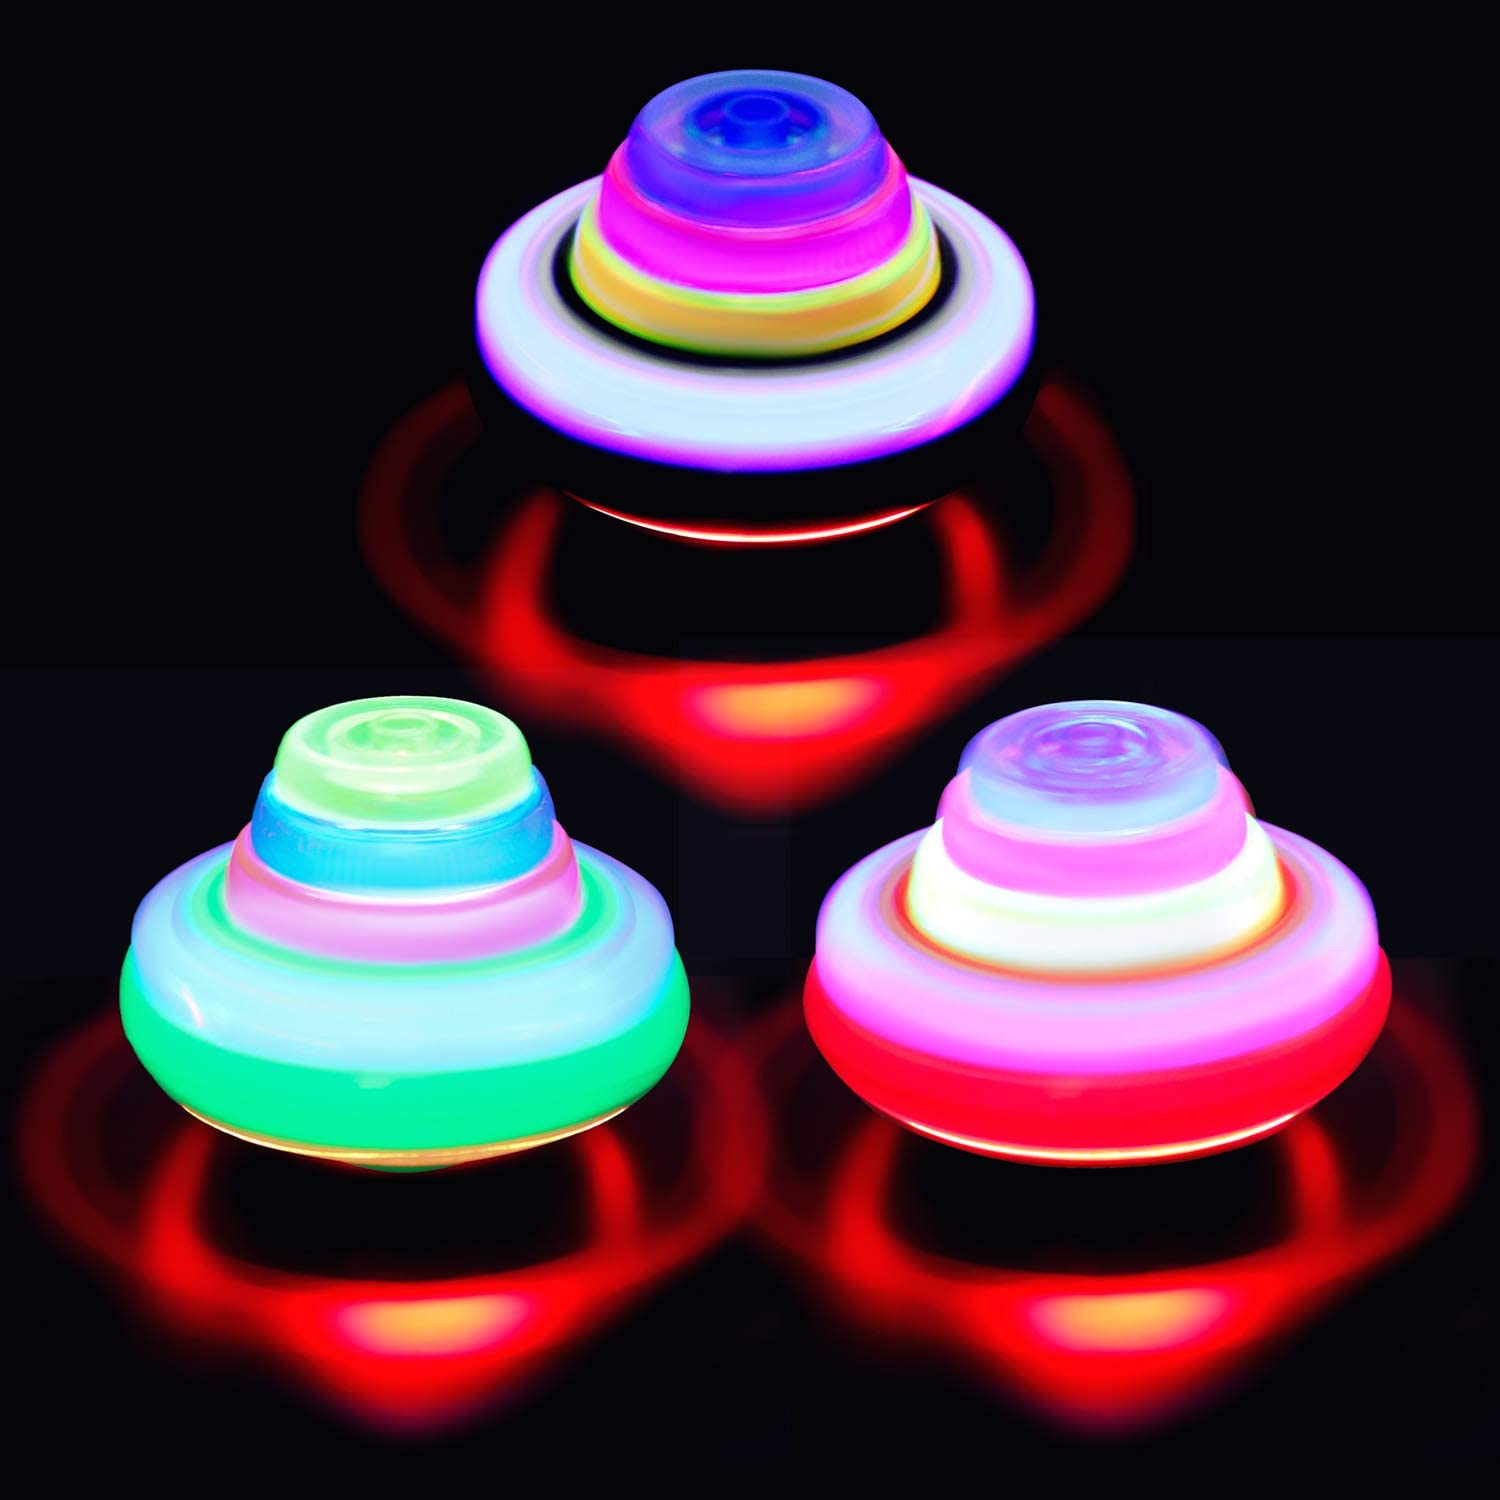 PROLOSO Spinning Top with Lights /& Music Light Up Peg Tops LED Spin Toys Gyroscope Flashing Spinner Party Favors Pack of 12